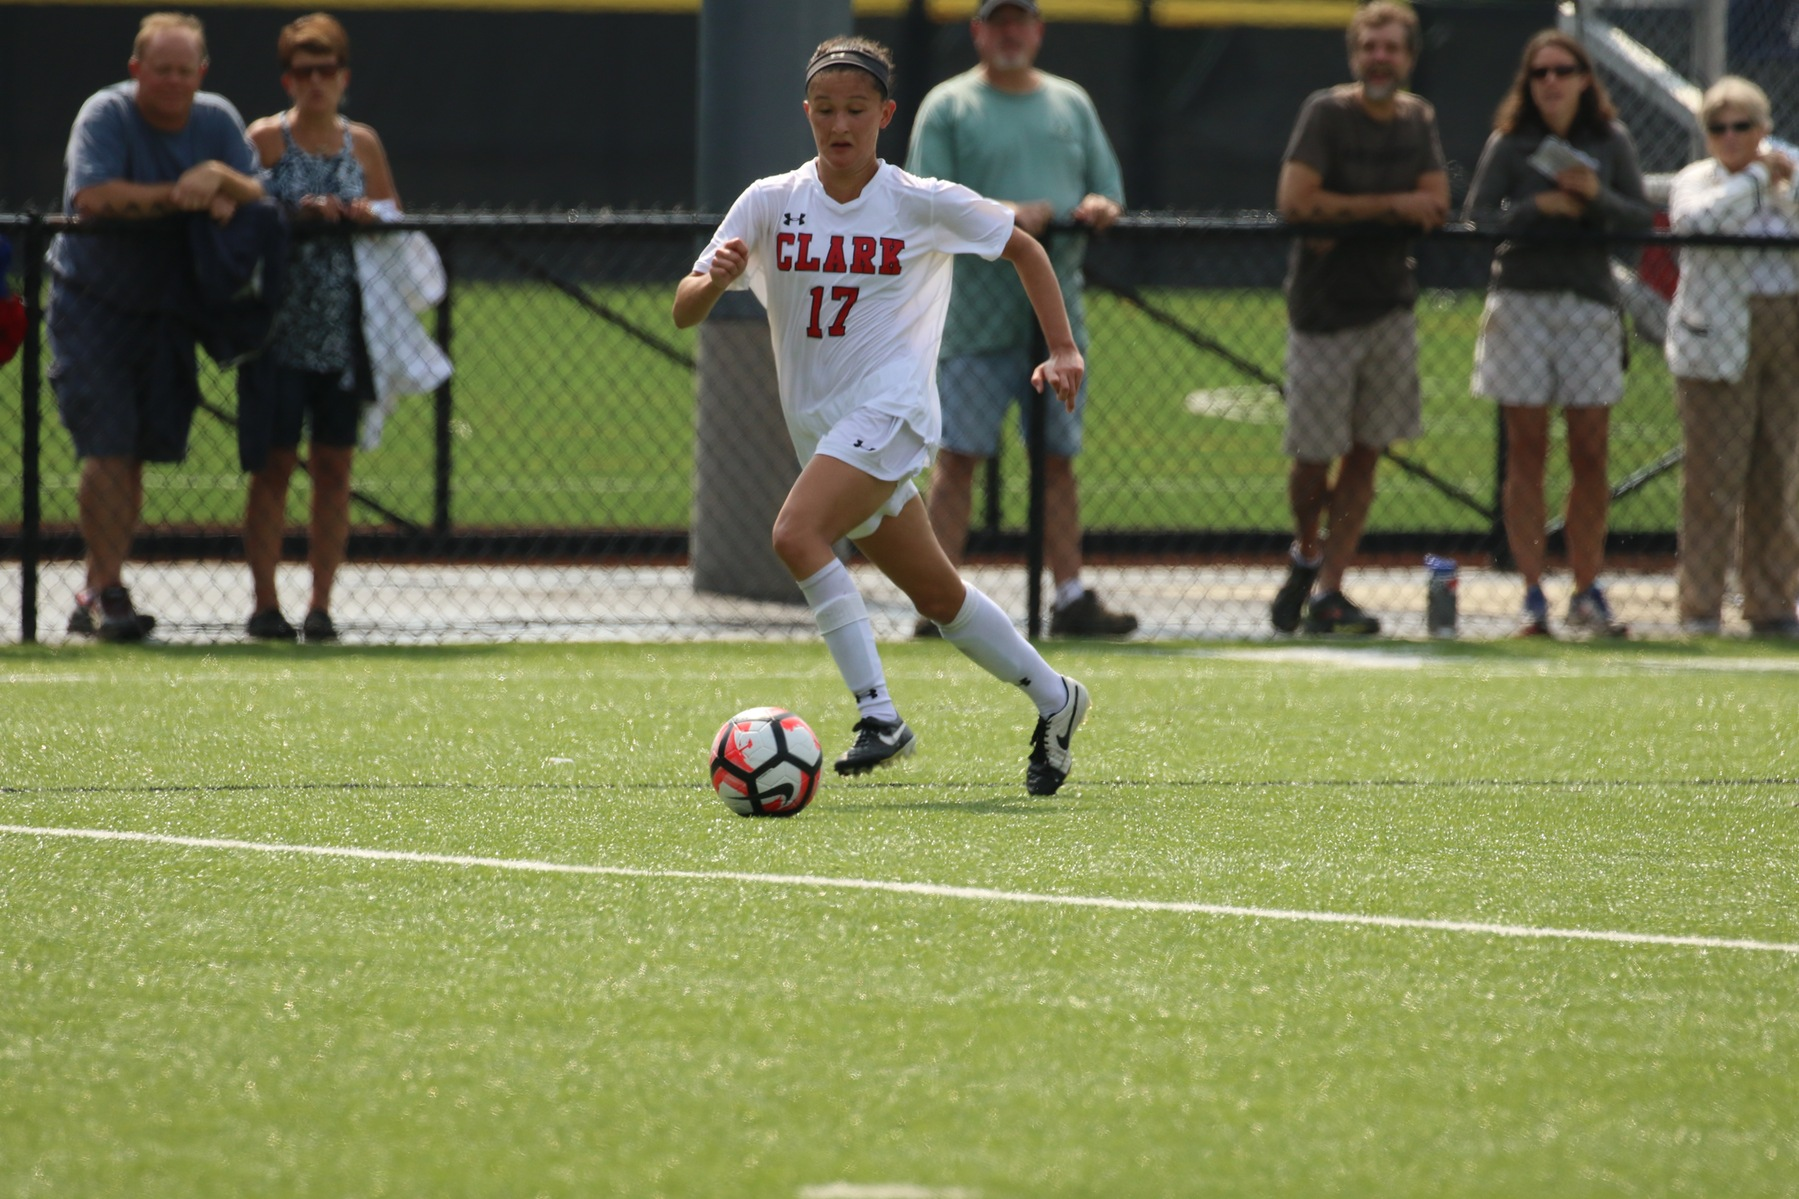 Women's Soccer Opens The Season With 3-0 Win Over Framingham State